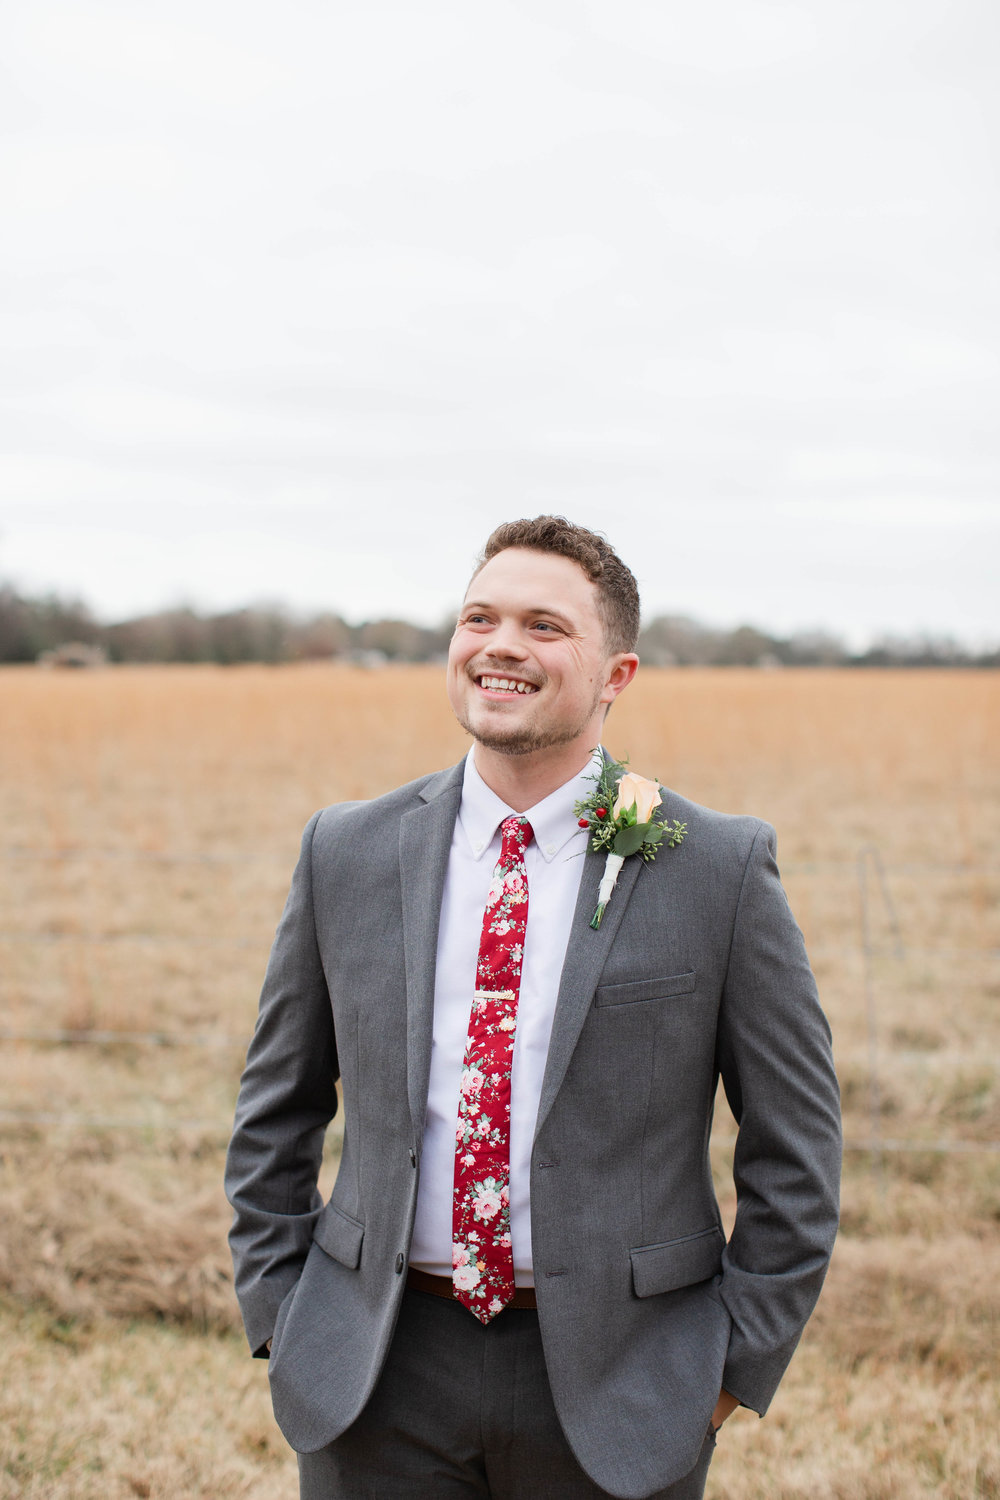 Matty-Drollette-Wedding-Photography-Alabama-46.jpg